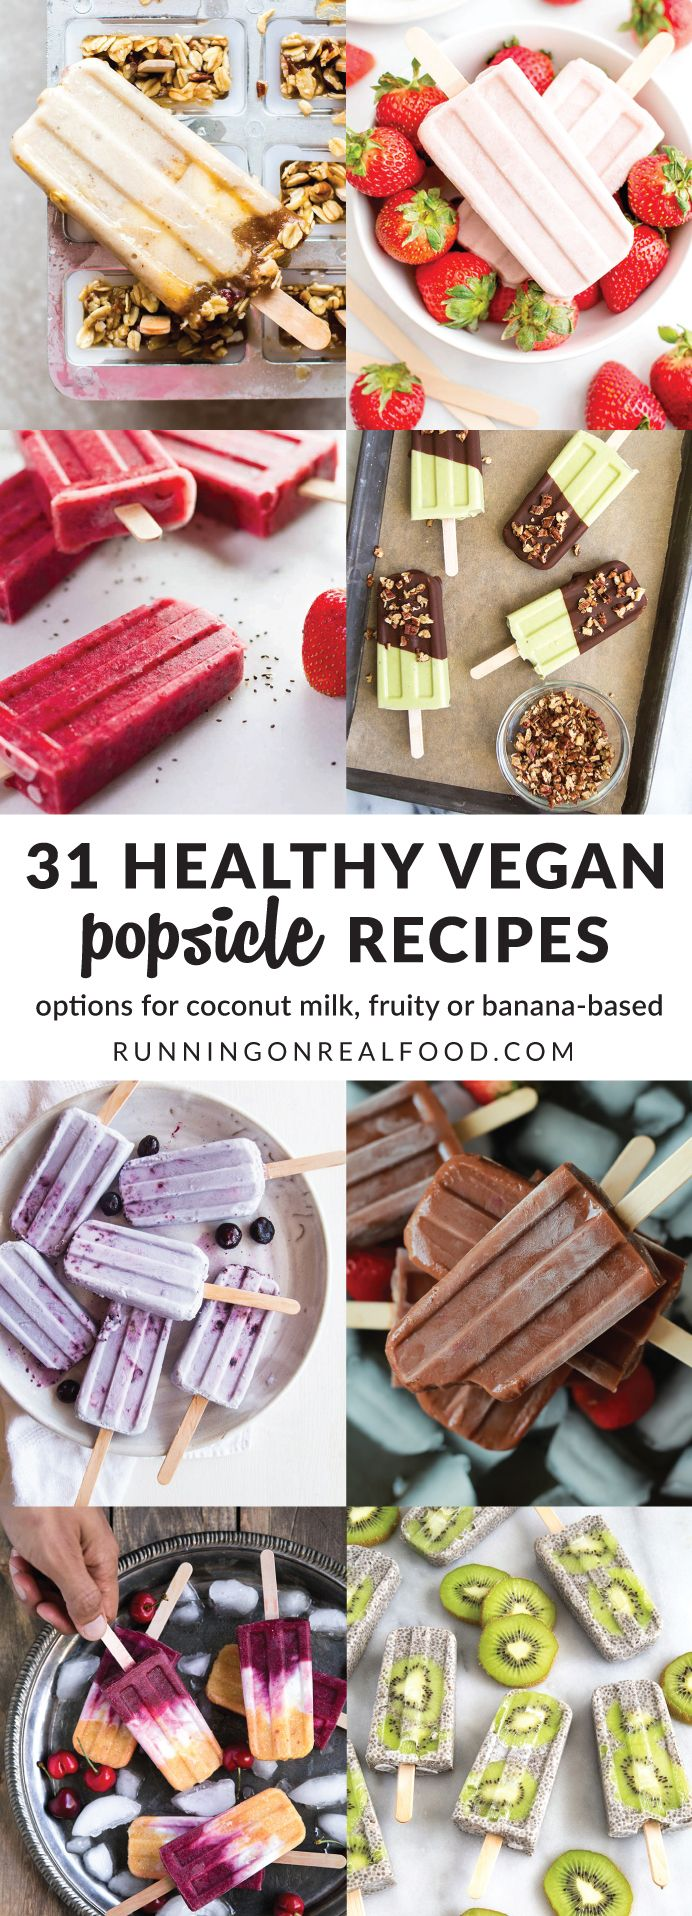 These healthy vegan popsicle recipes are all you need to enjoy delicious and nutritious frozen treats all summer! Recipes include coconut milk-based popsicles, fruit popsicles and banana ice cream-based popsicles. All dairy-free! 32 Healthy Vegan Popsicle Recipes http://runningonrealfood.com/healthy-vegan-popsicle-recipes/